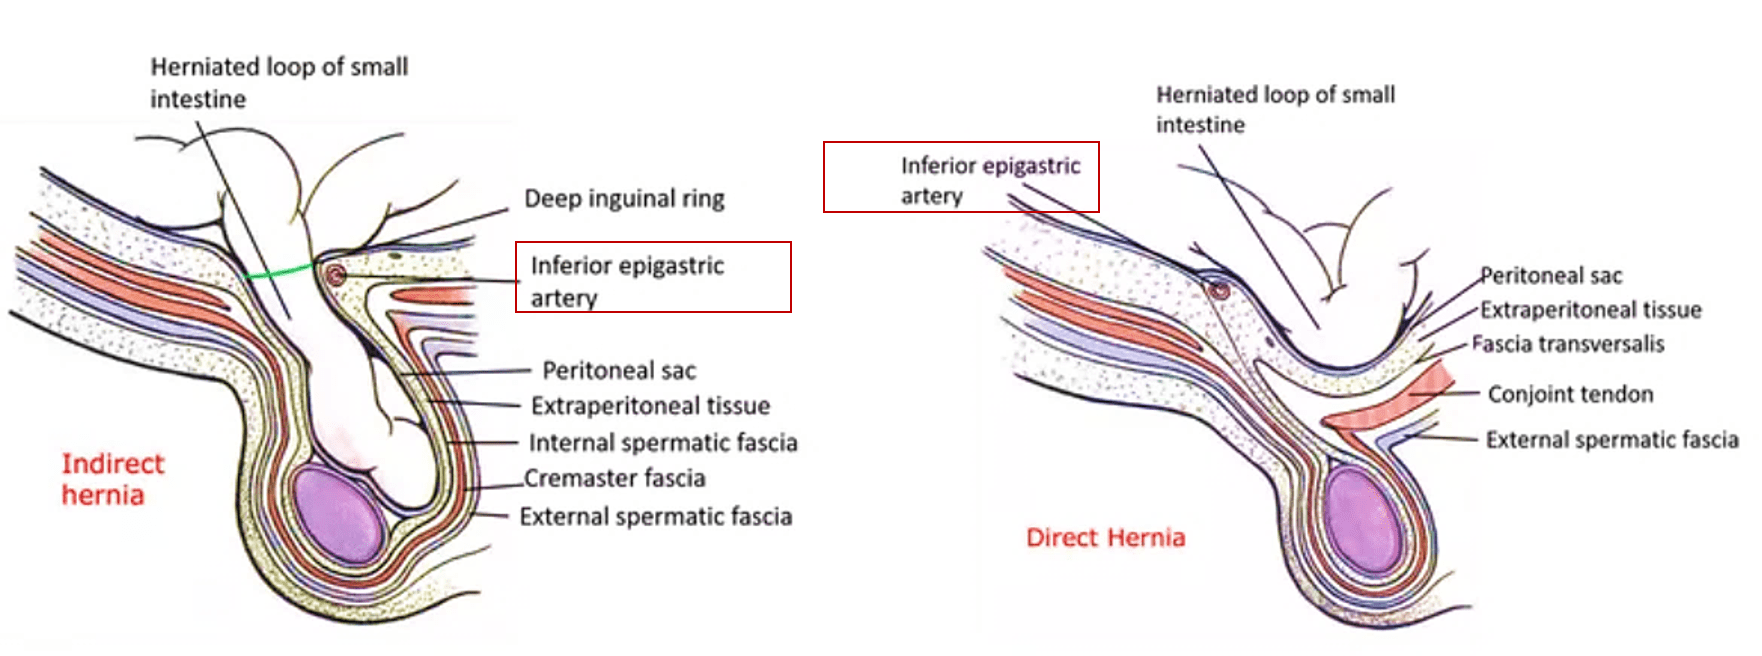 Inguinal Hernias - direct and indirect inguinal hernias, differences ...